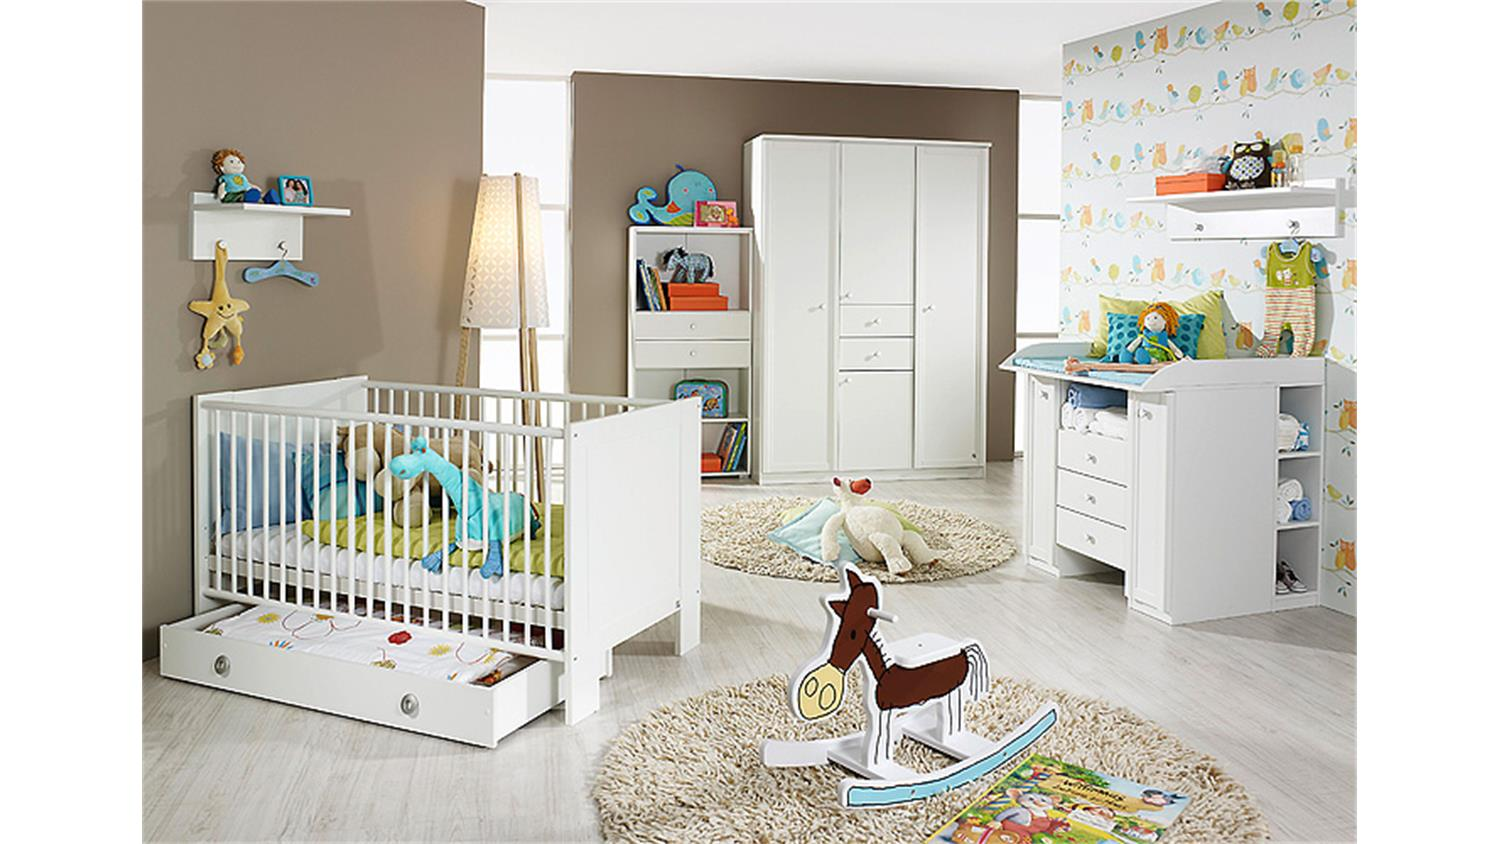 babyzimmer komplett set weis inspiration design familie. Black Bedroom Furniture Sets. Home Design Ideas